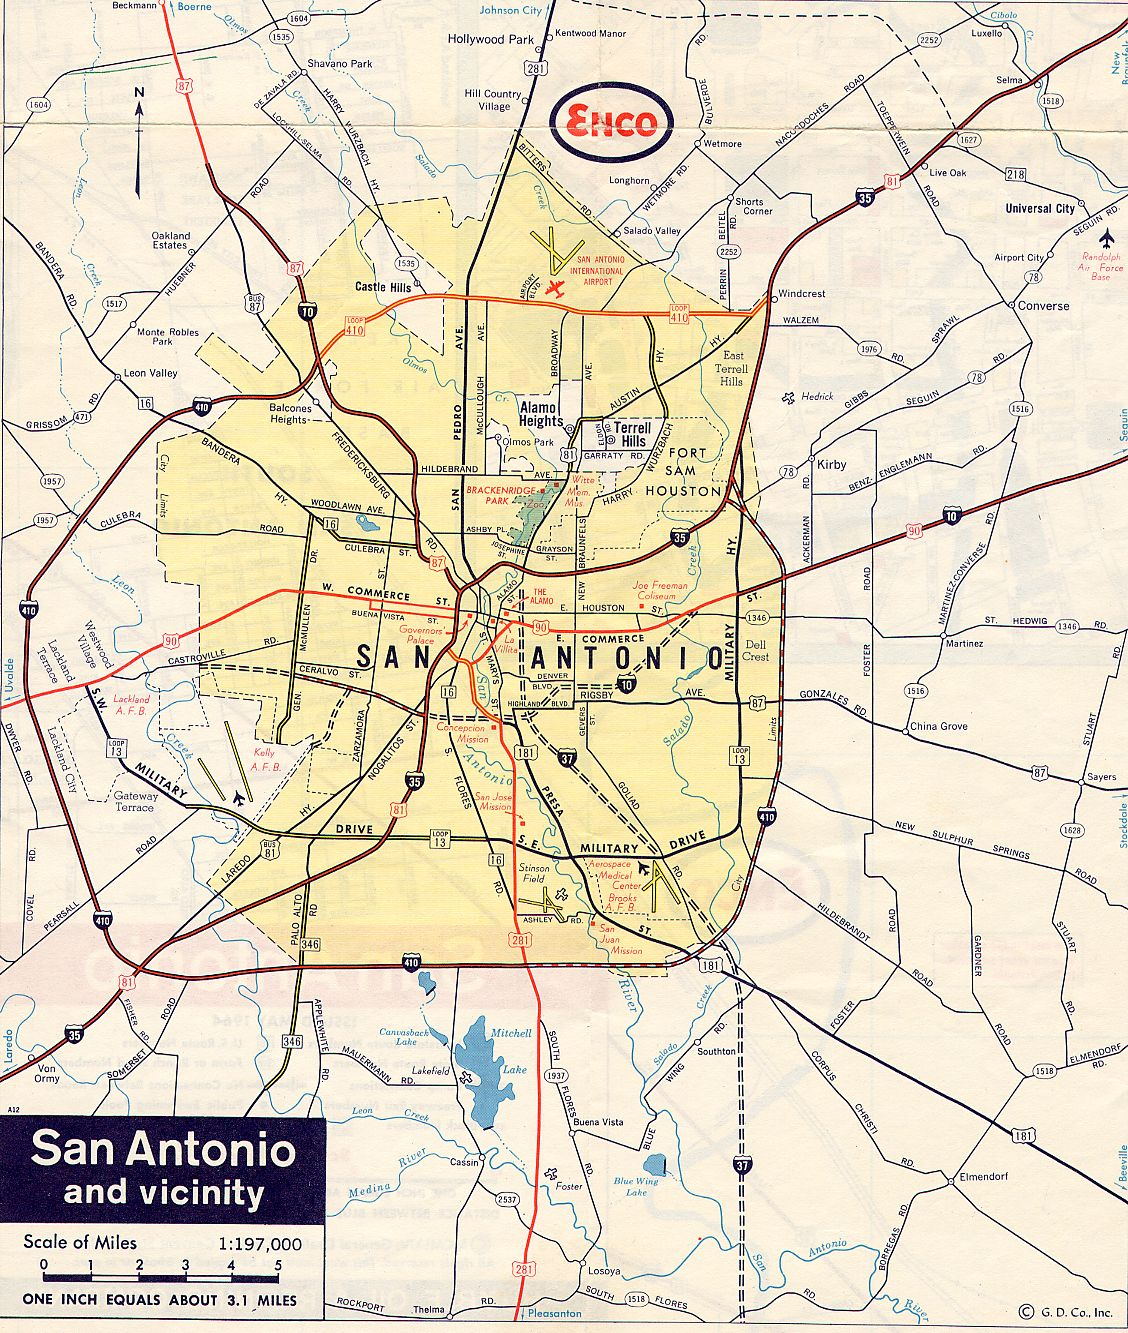 Texasfreeway > San Antonio > Historical Information > Old Road Maps - Detailed Map Of San Antonio Texas